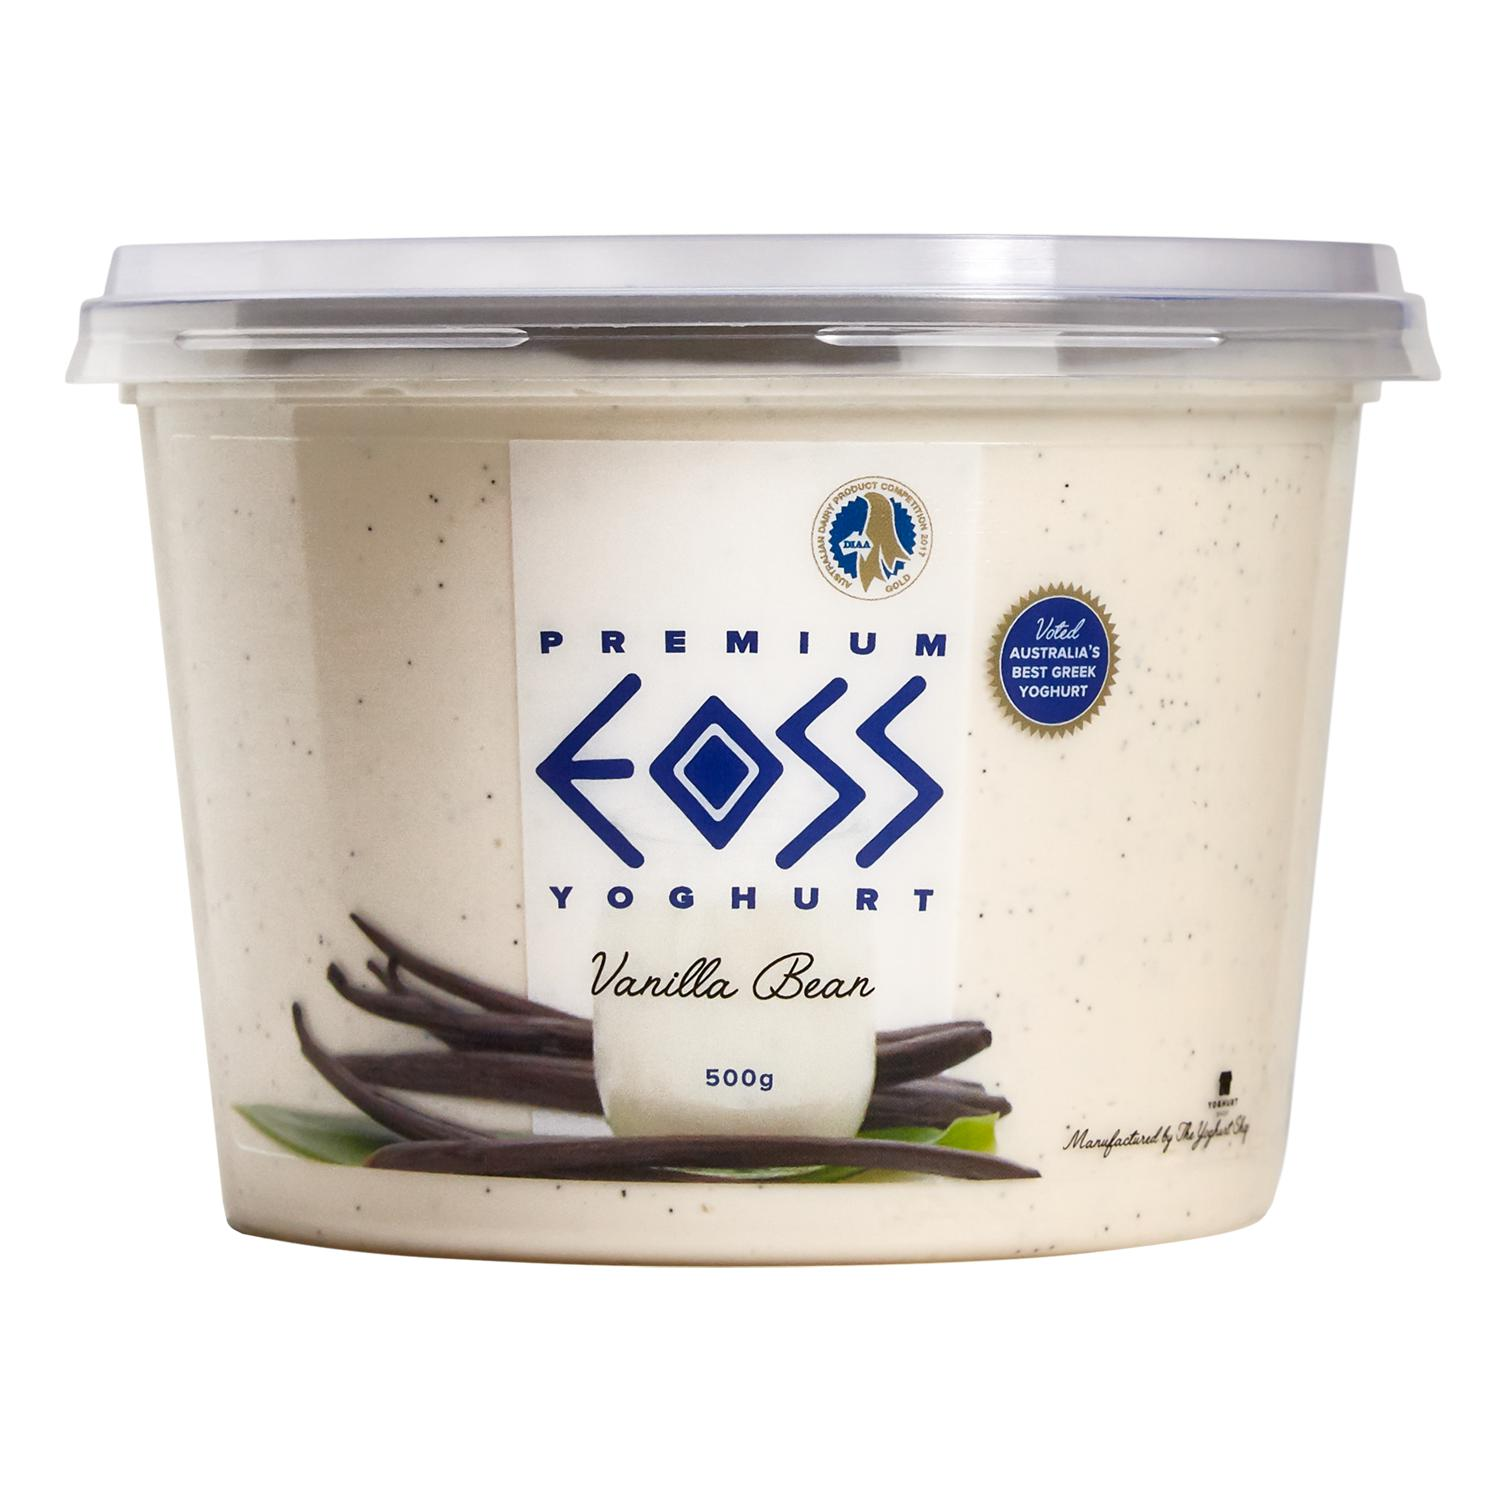 EOSS Yoghurt Vanilla Bean Tub 500g-Groceries-EOSS Yoghurt-Fresh Connection